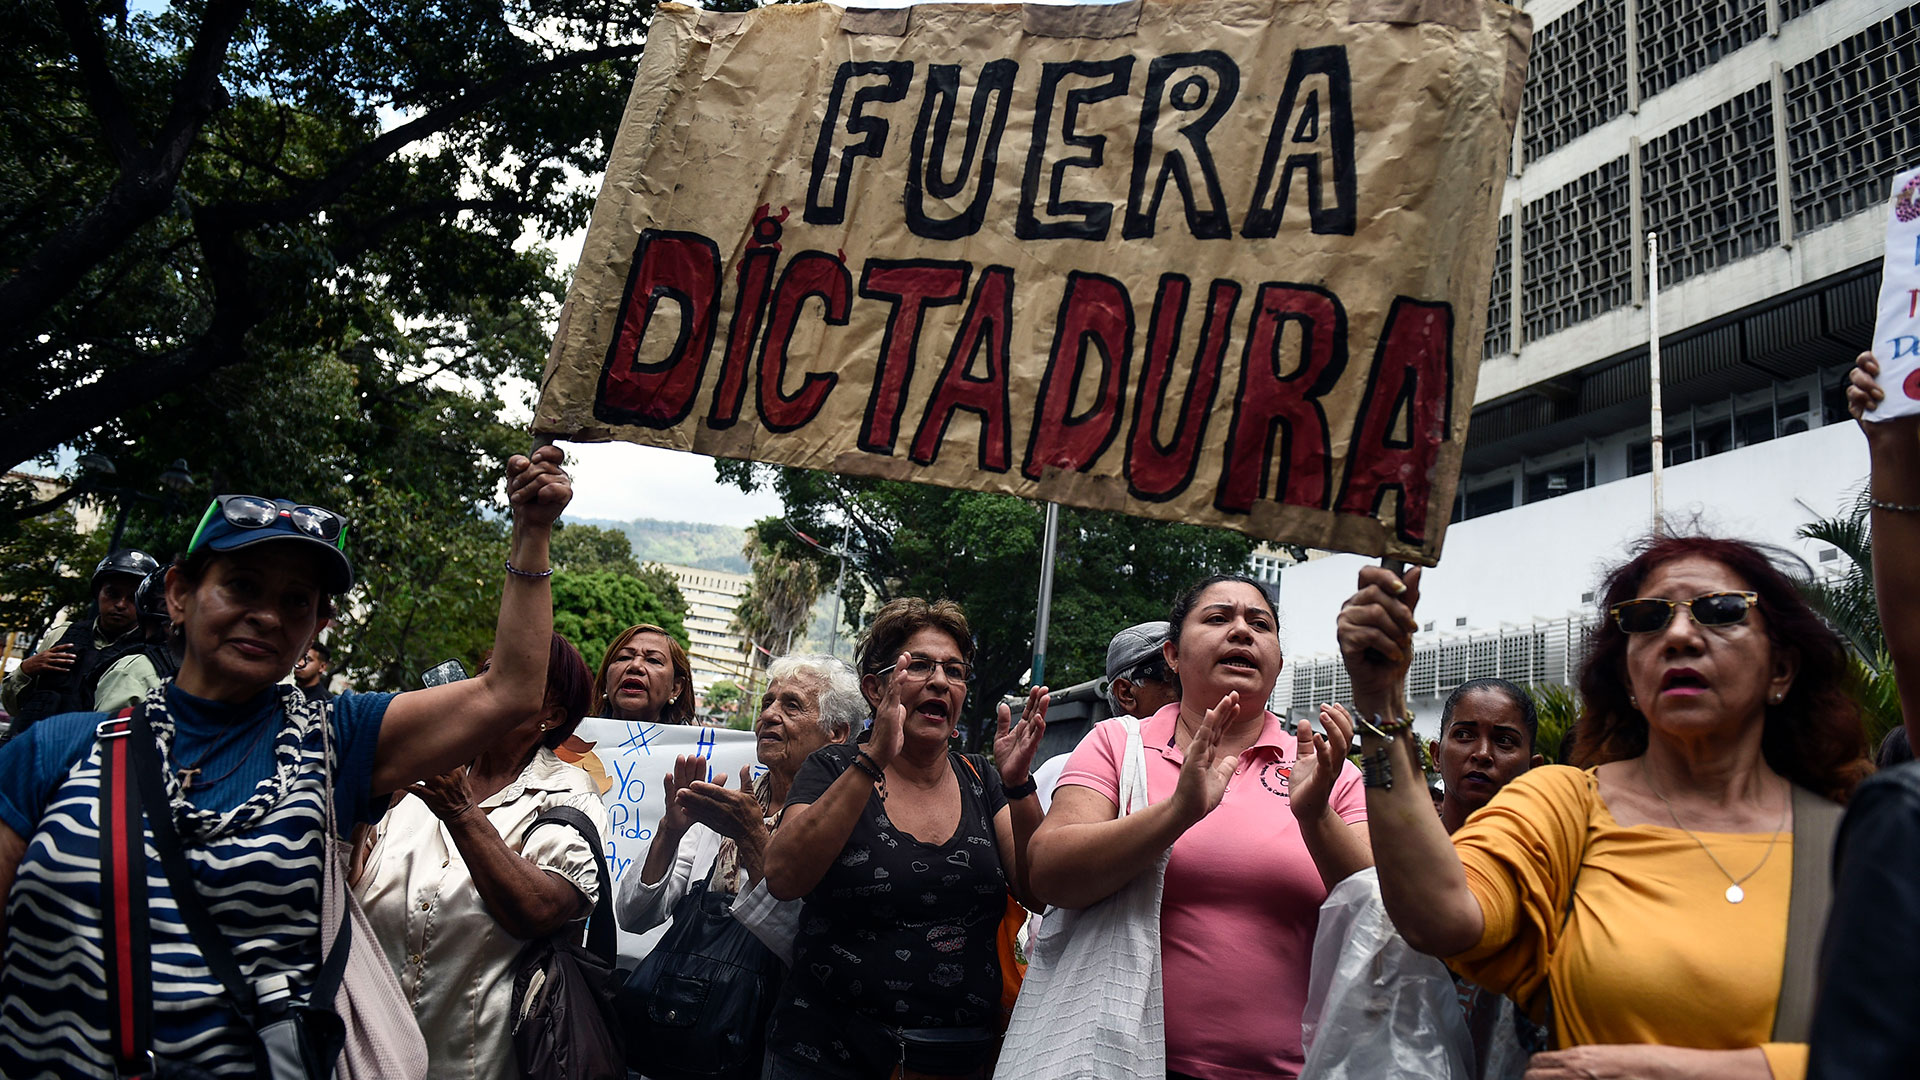 """People take part in a demonstration to protest against the government of President Nicolas Maduro, called by opposition leader and self-proclaimed """"acting president"""" Juan Guaido, outside the """"Dr. JM de los Rios"""" Children's Hospital in Caracas on January 30, 2019. - Venezuelan President Nicolas Maduro hit out Wednesday at military """"mercenaries"""" he says are conspiring to divide the armed forces and plot a coup as the opposition planned a new protest to force the socialist leader from power. (Photo by Federico Parra / AFP)"""